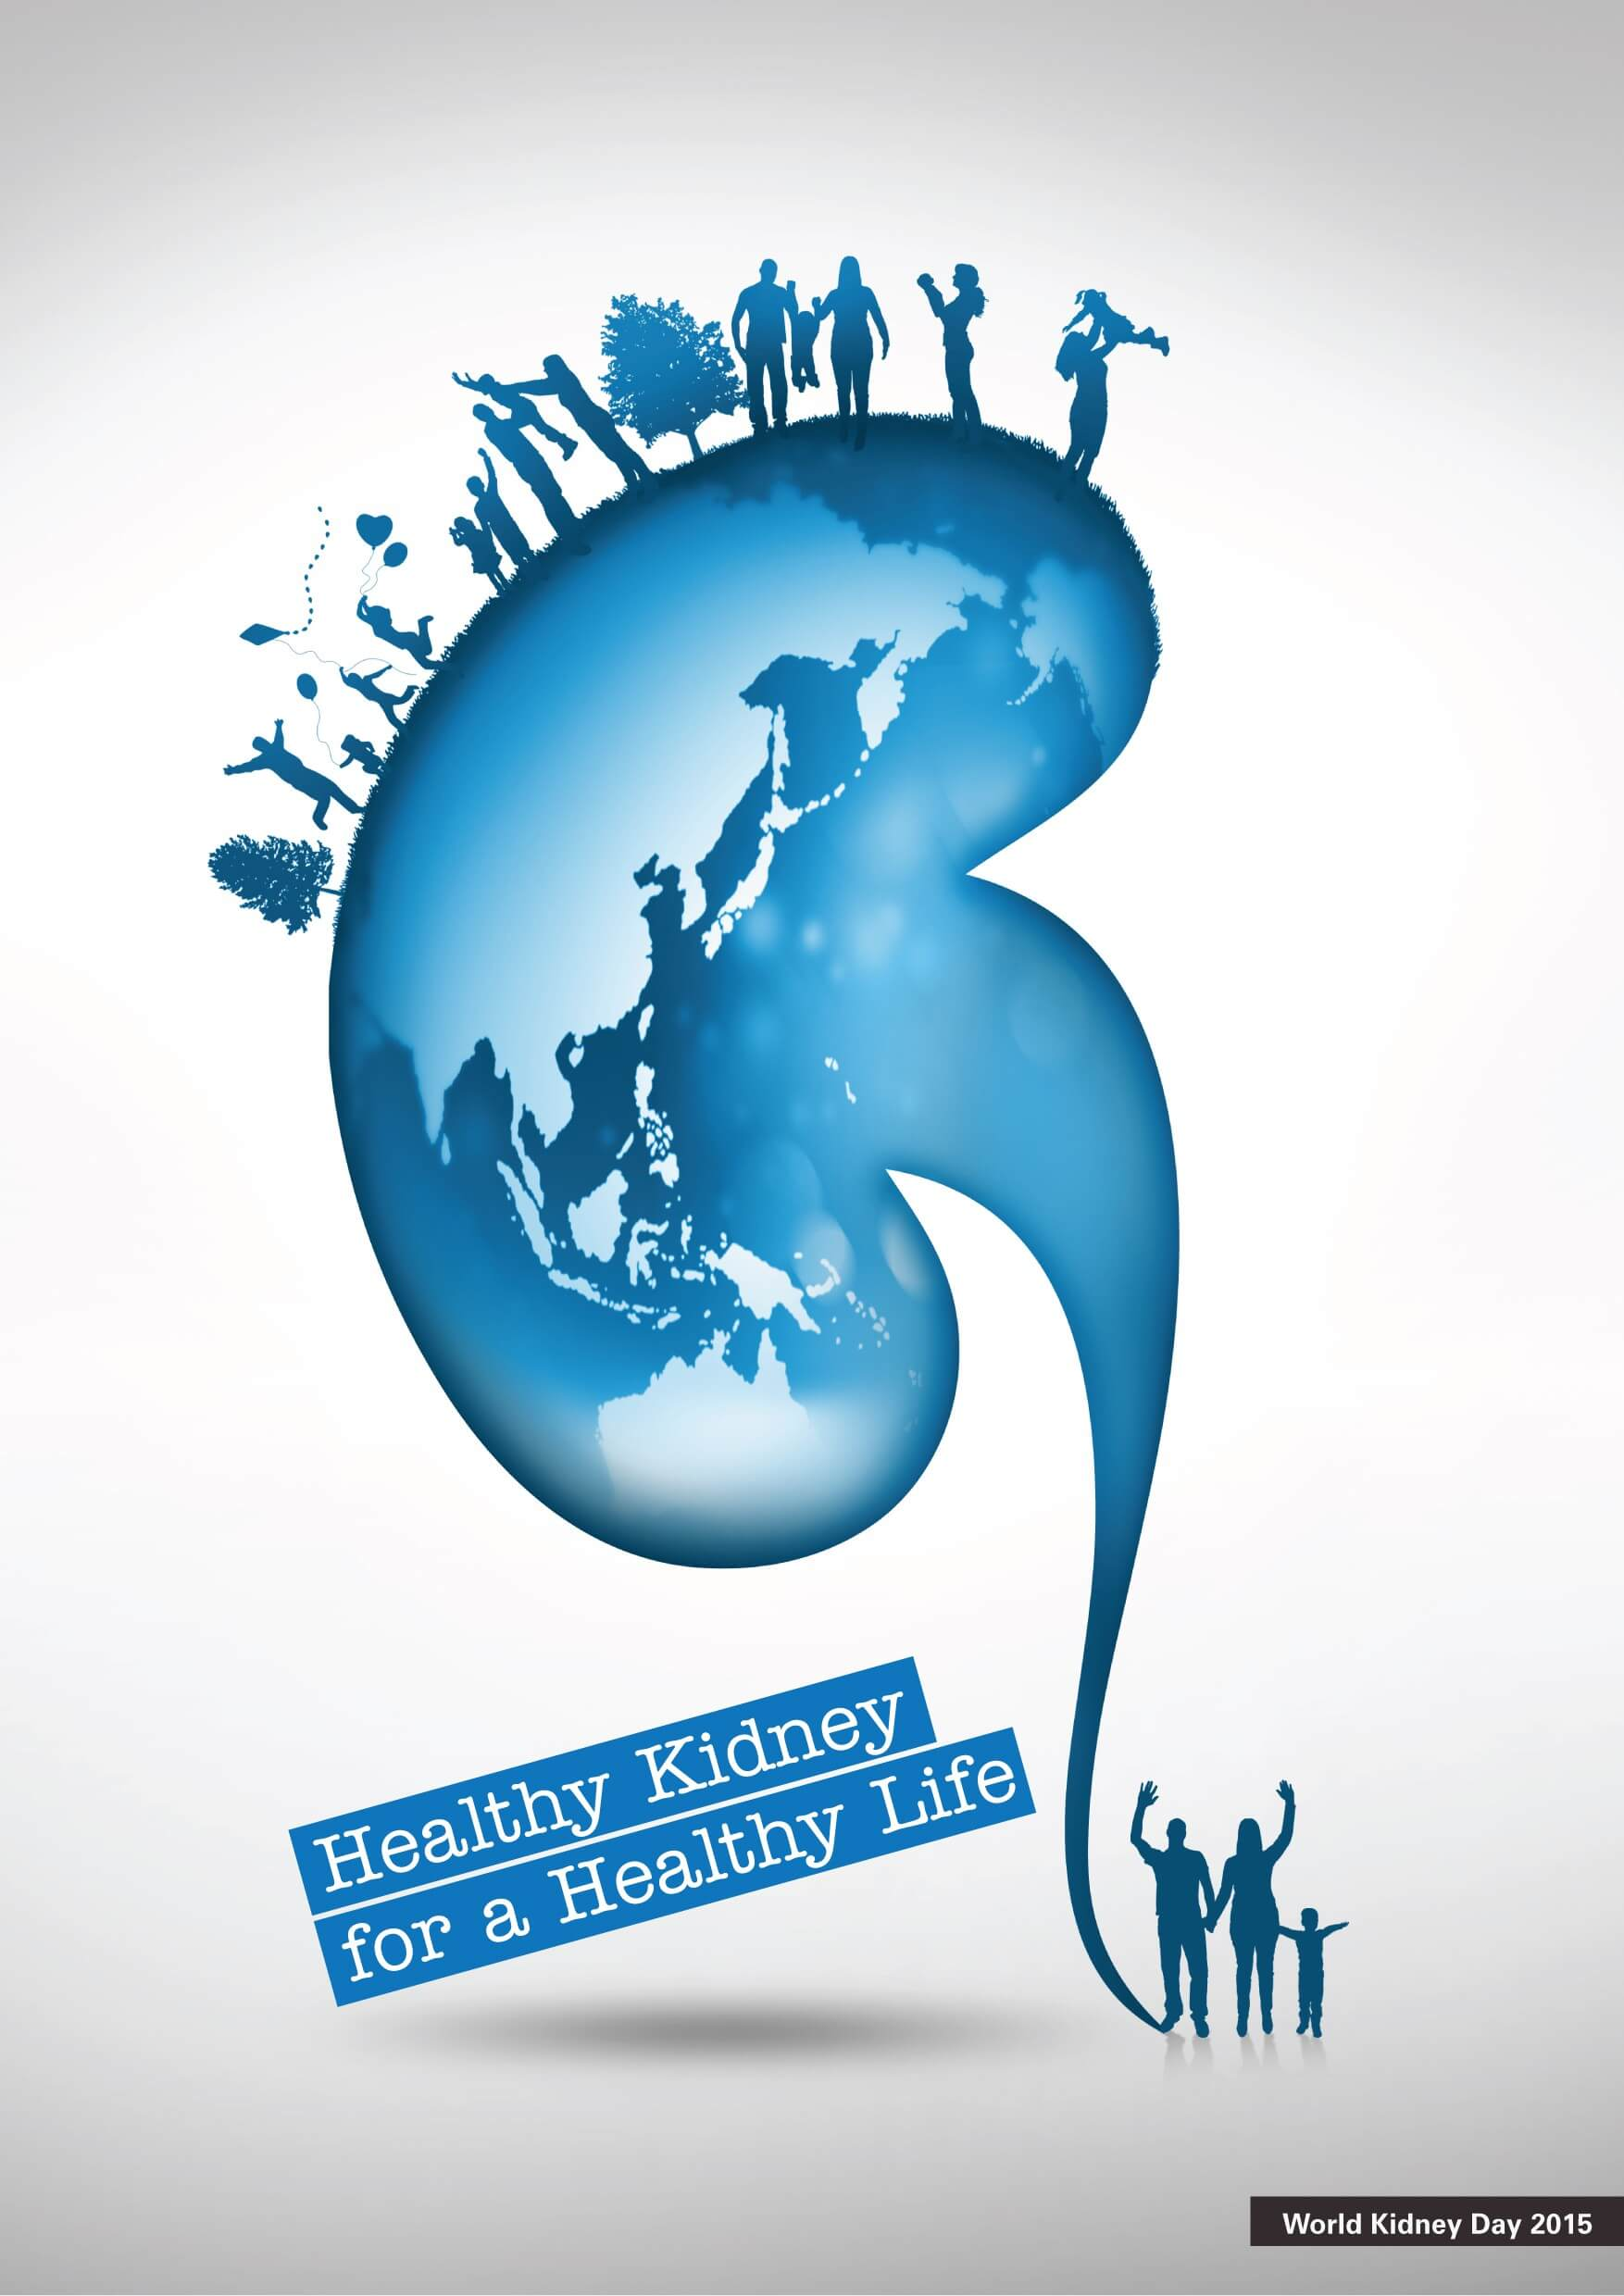 world kidney day hd wallpaper image free